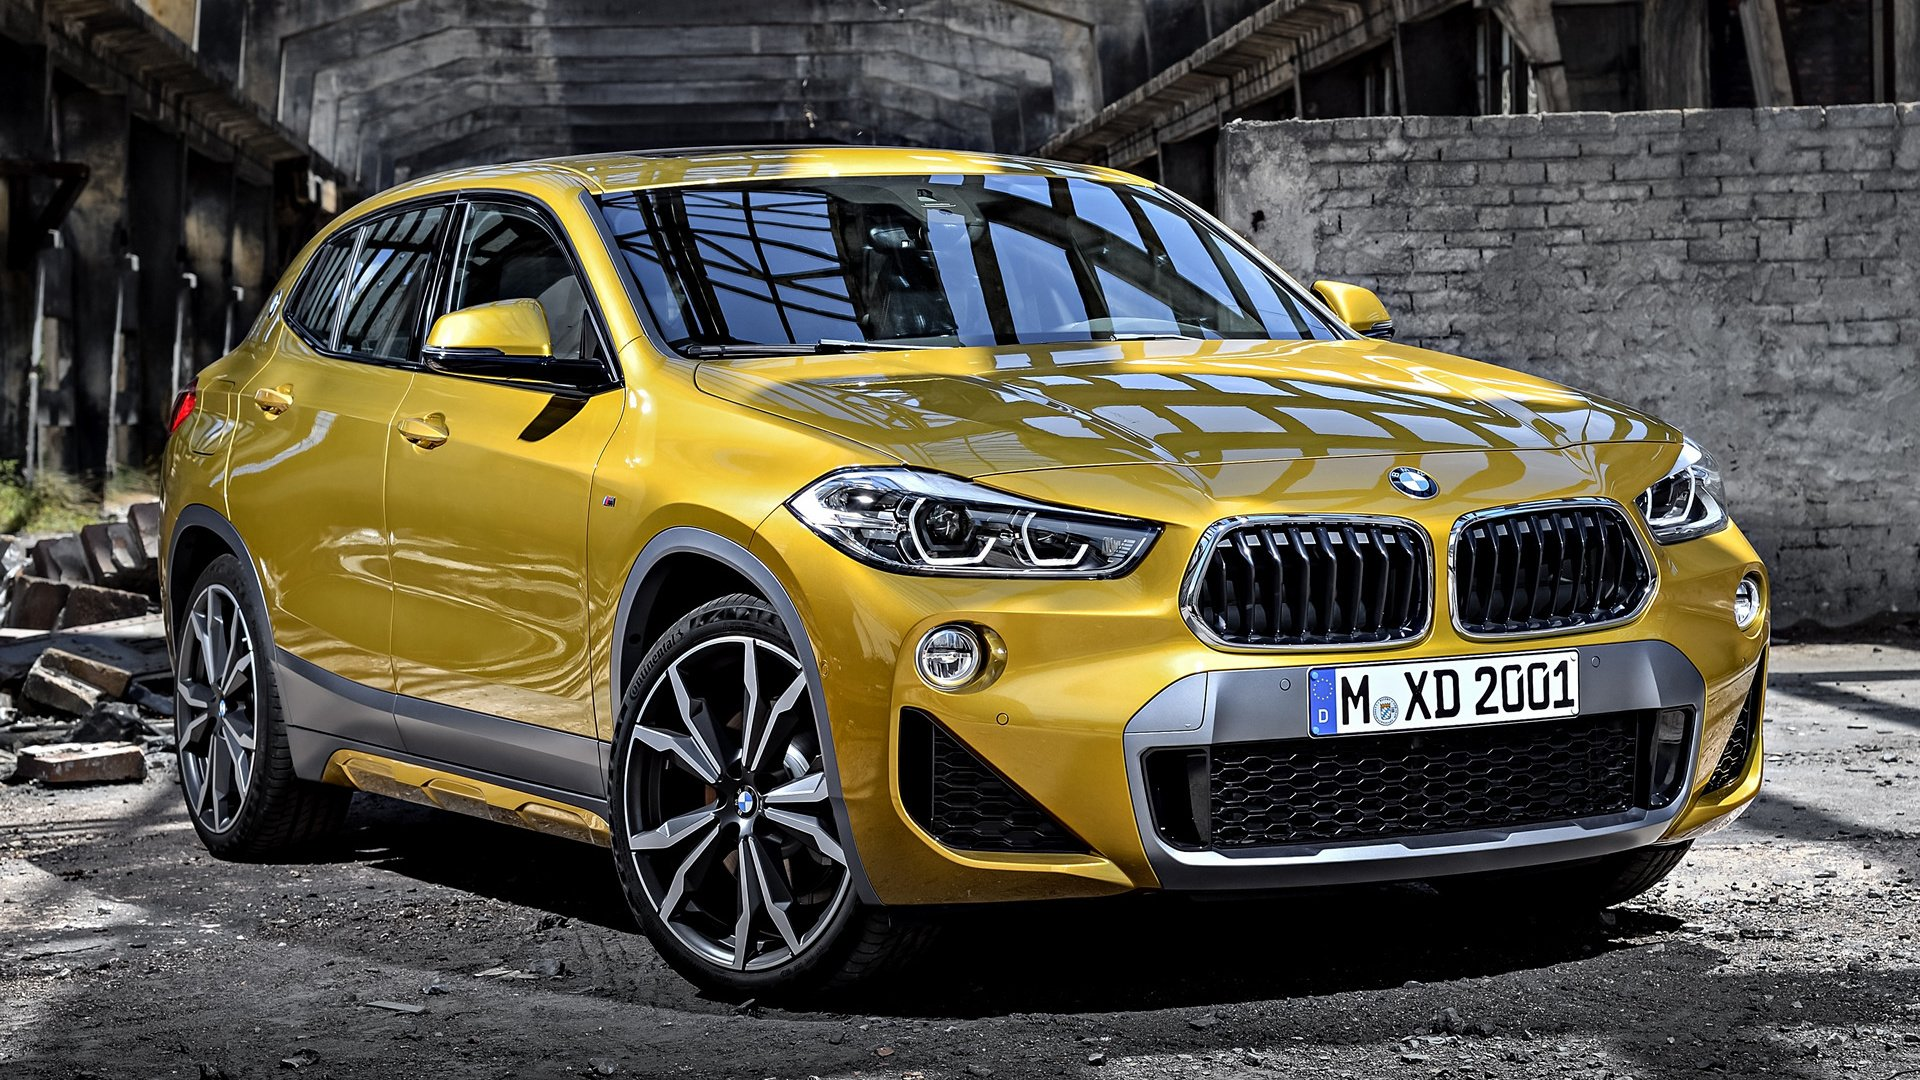 2018 bmw x2 m sport x full hd wallpaper and background image 1920x1080 id 880149. Black Bedroom Furniture Sets. Home Design Ideas